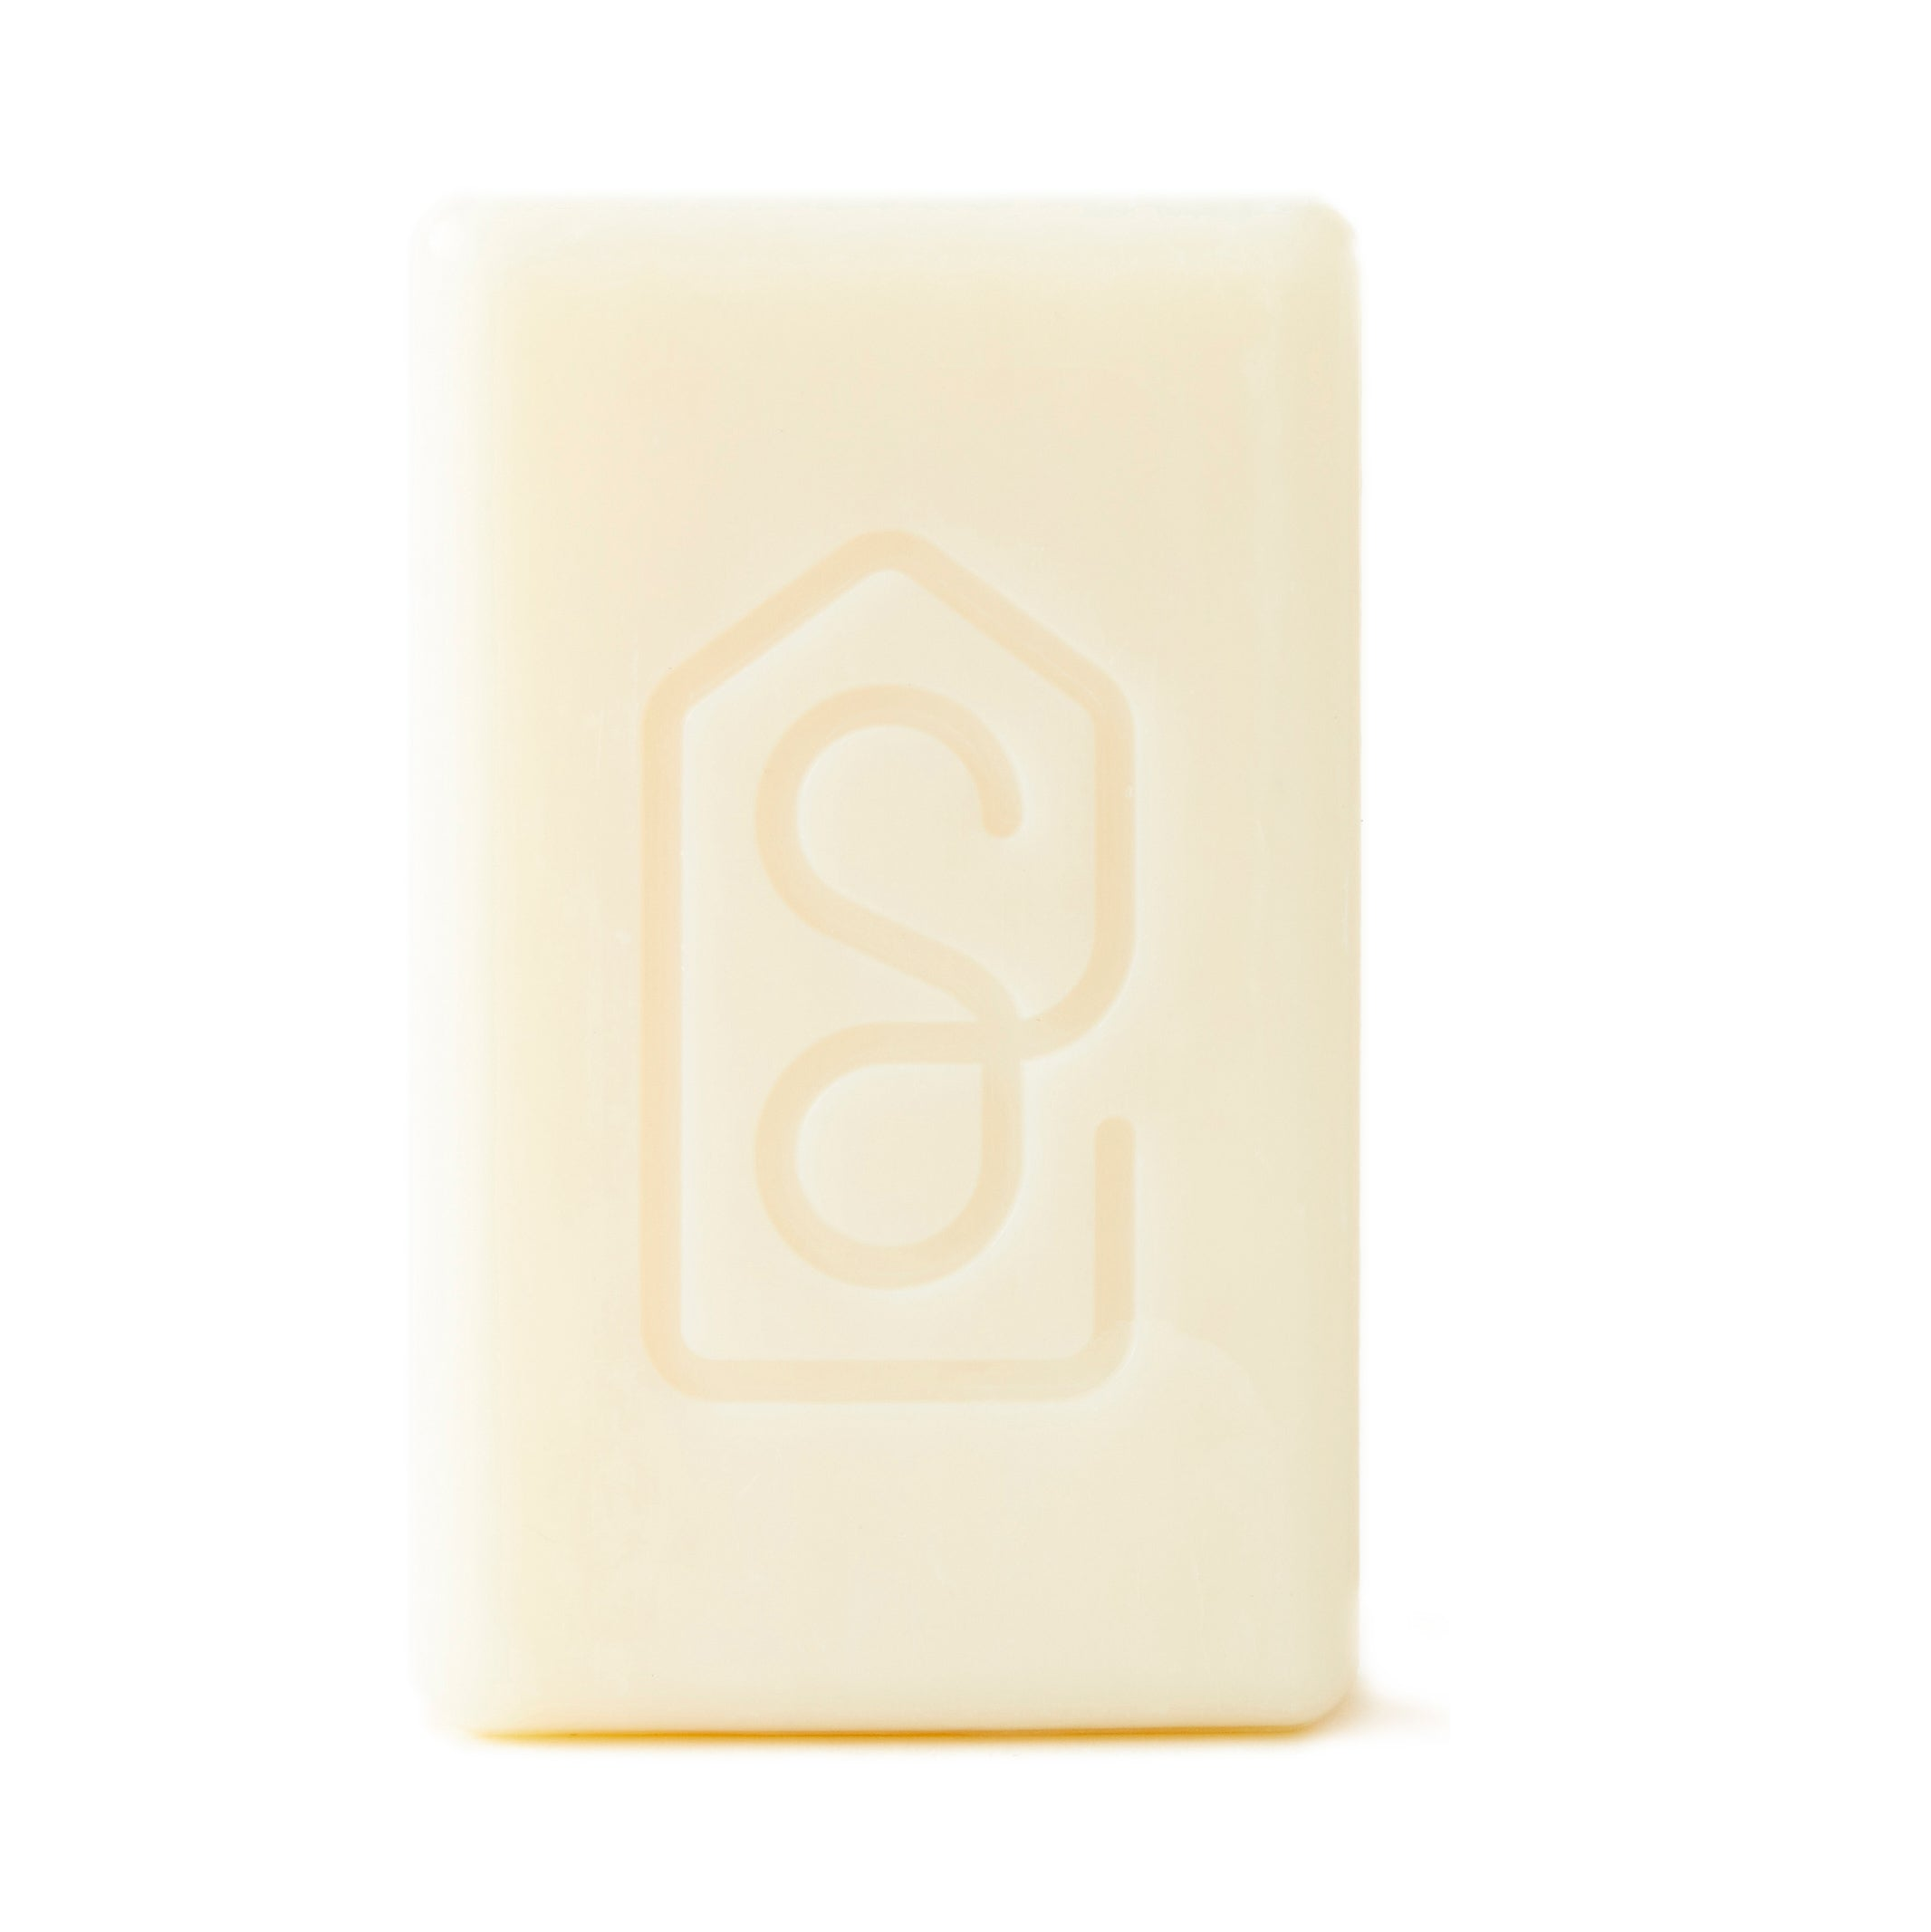 Nonsense Bar of Soap light cream bar without wrapper